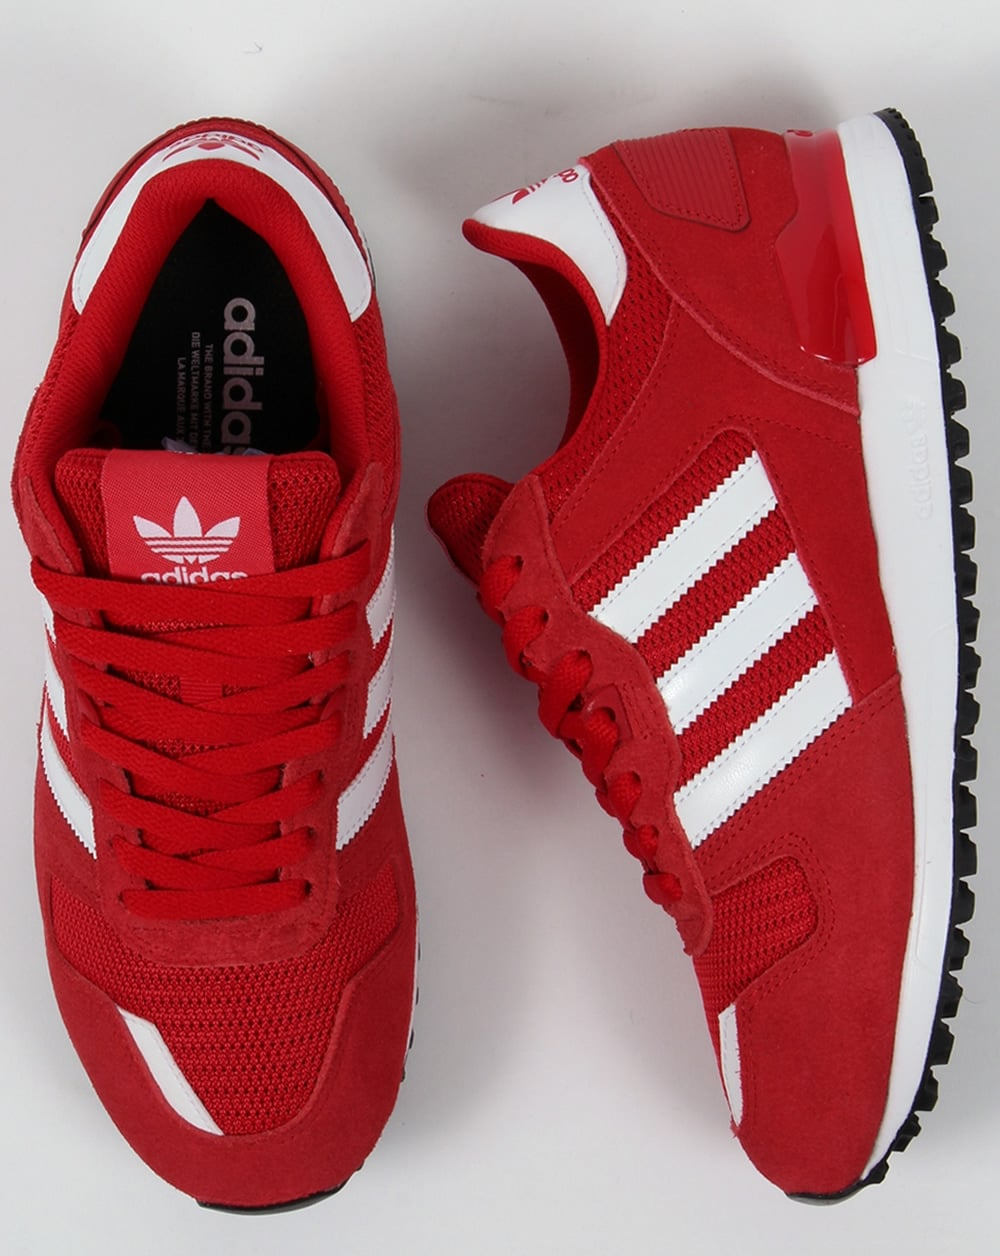 Adidas Trainers Adidas ZX 700 Trainers Red/White